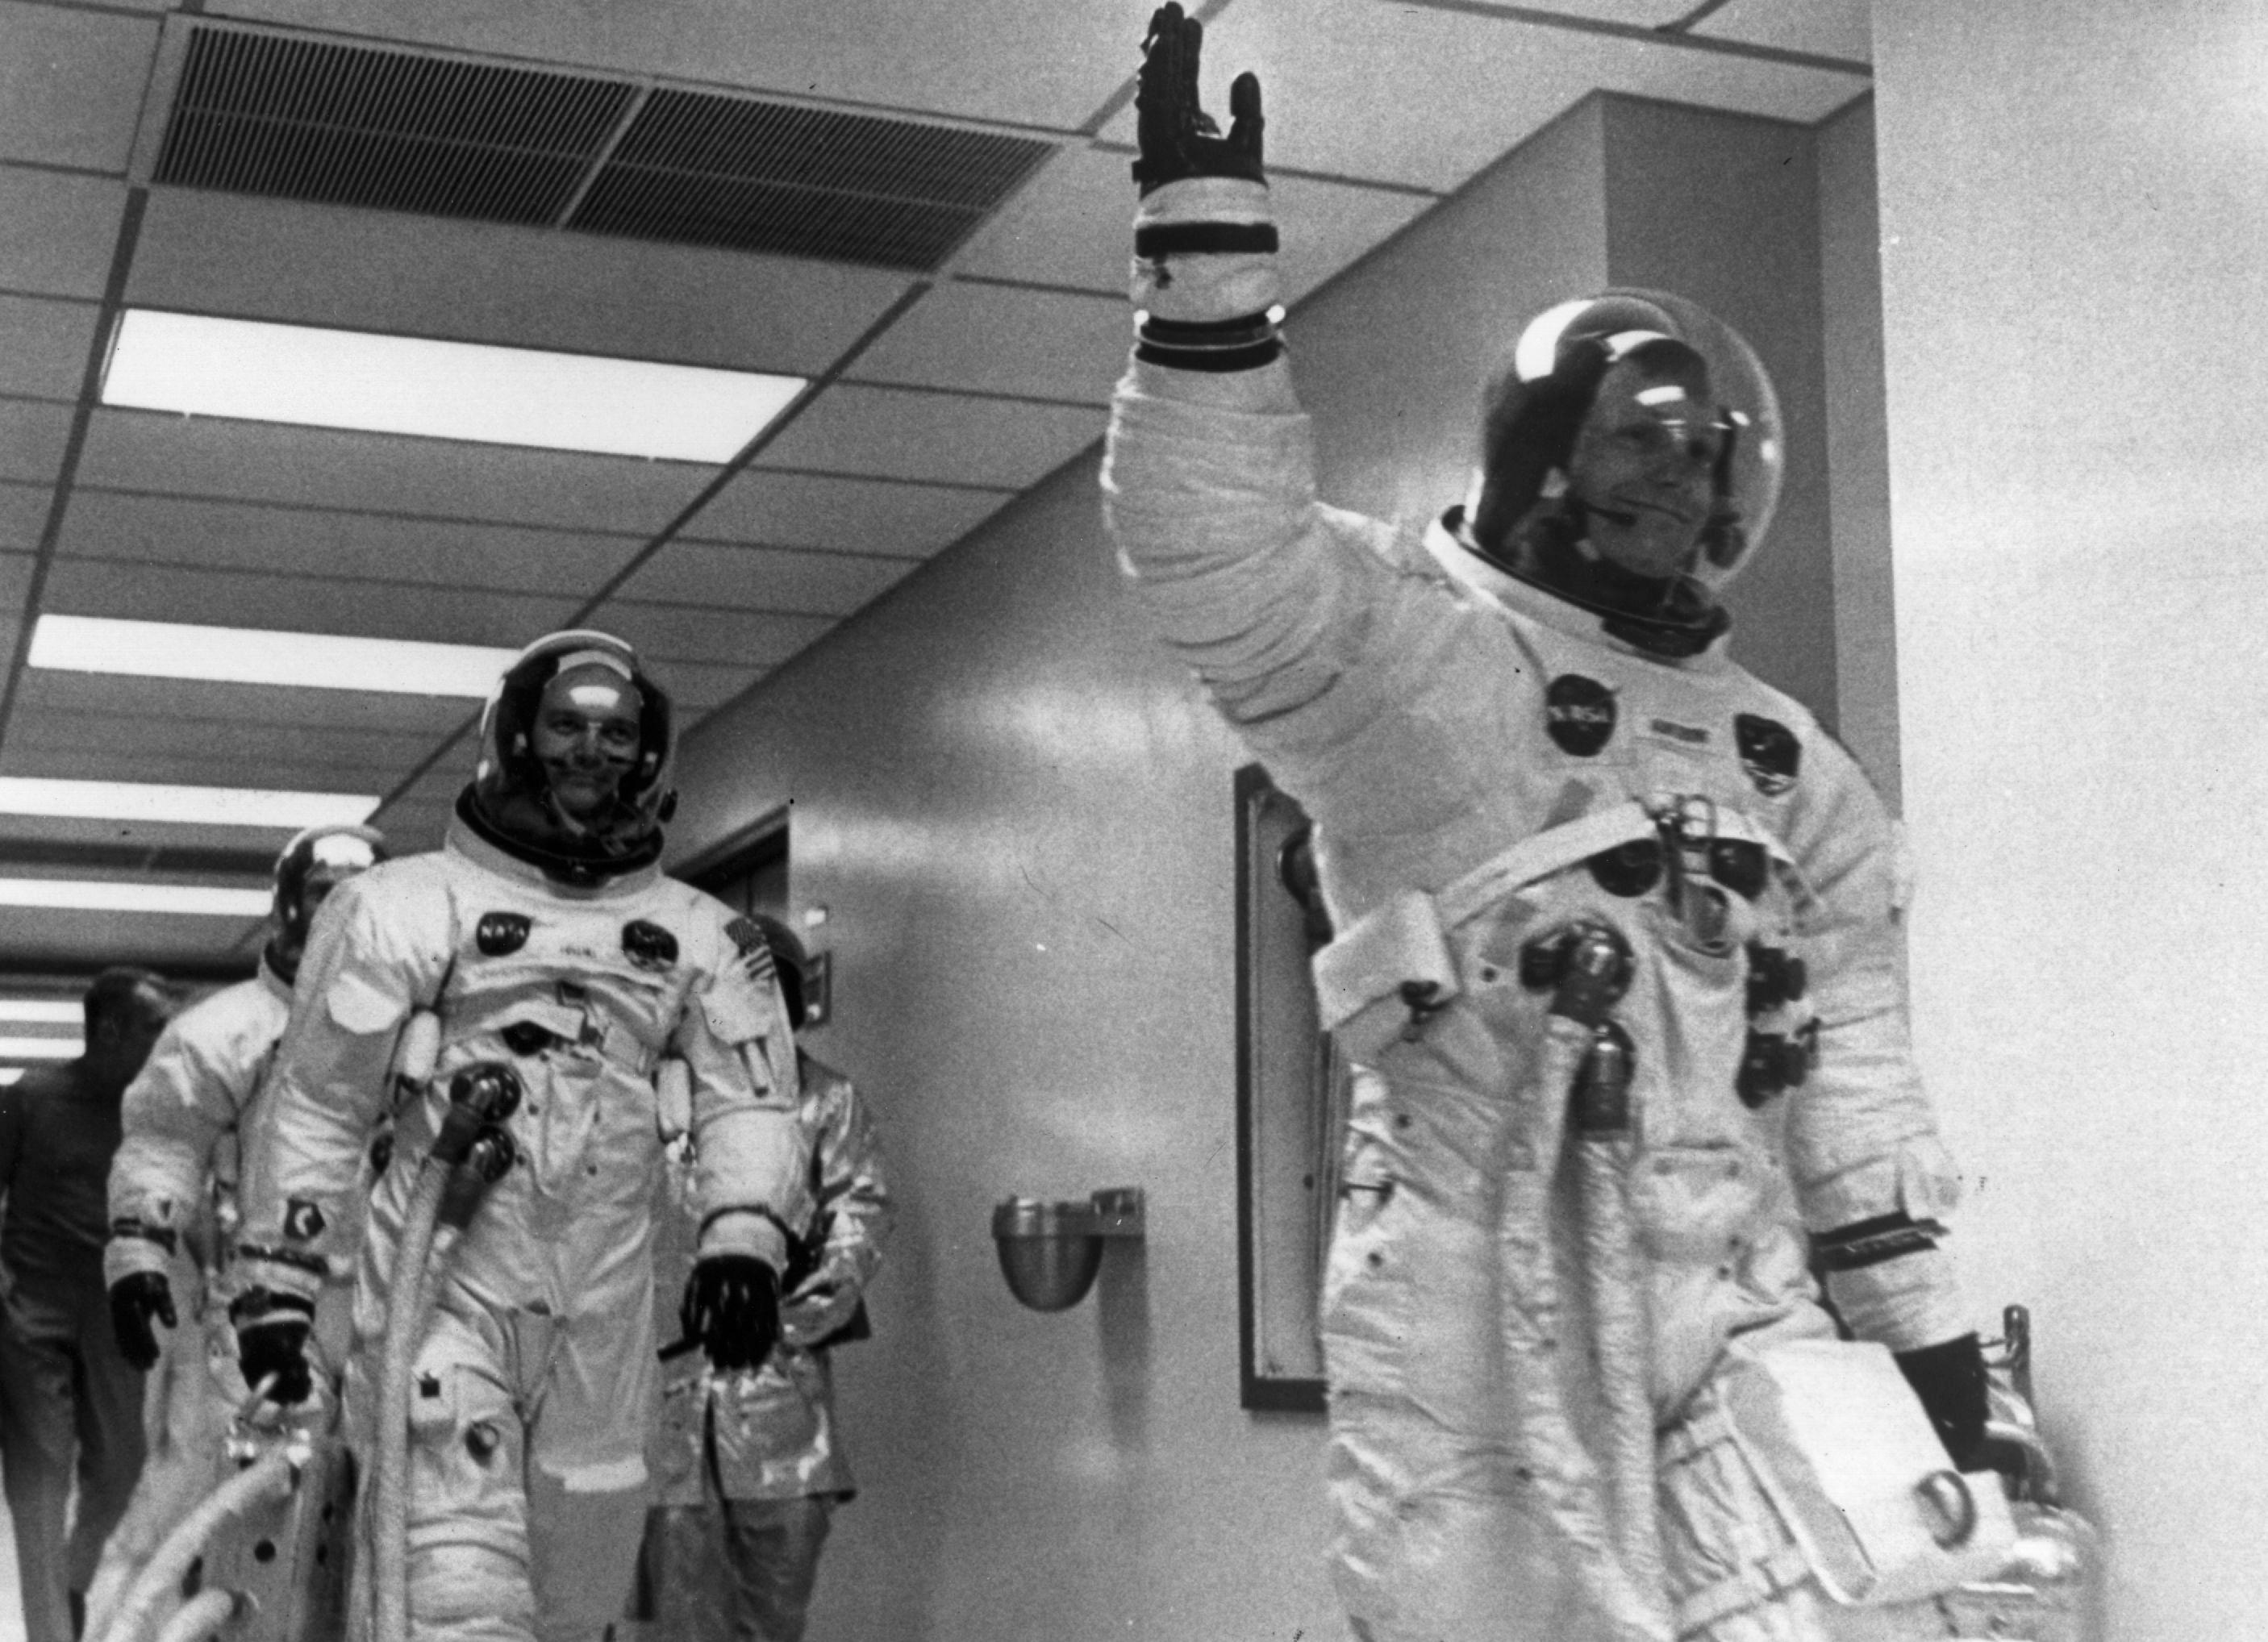 Apollo 11: the fight for the first footprint on the moon